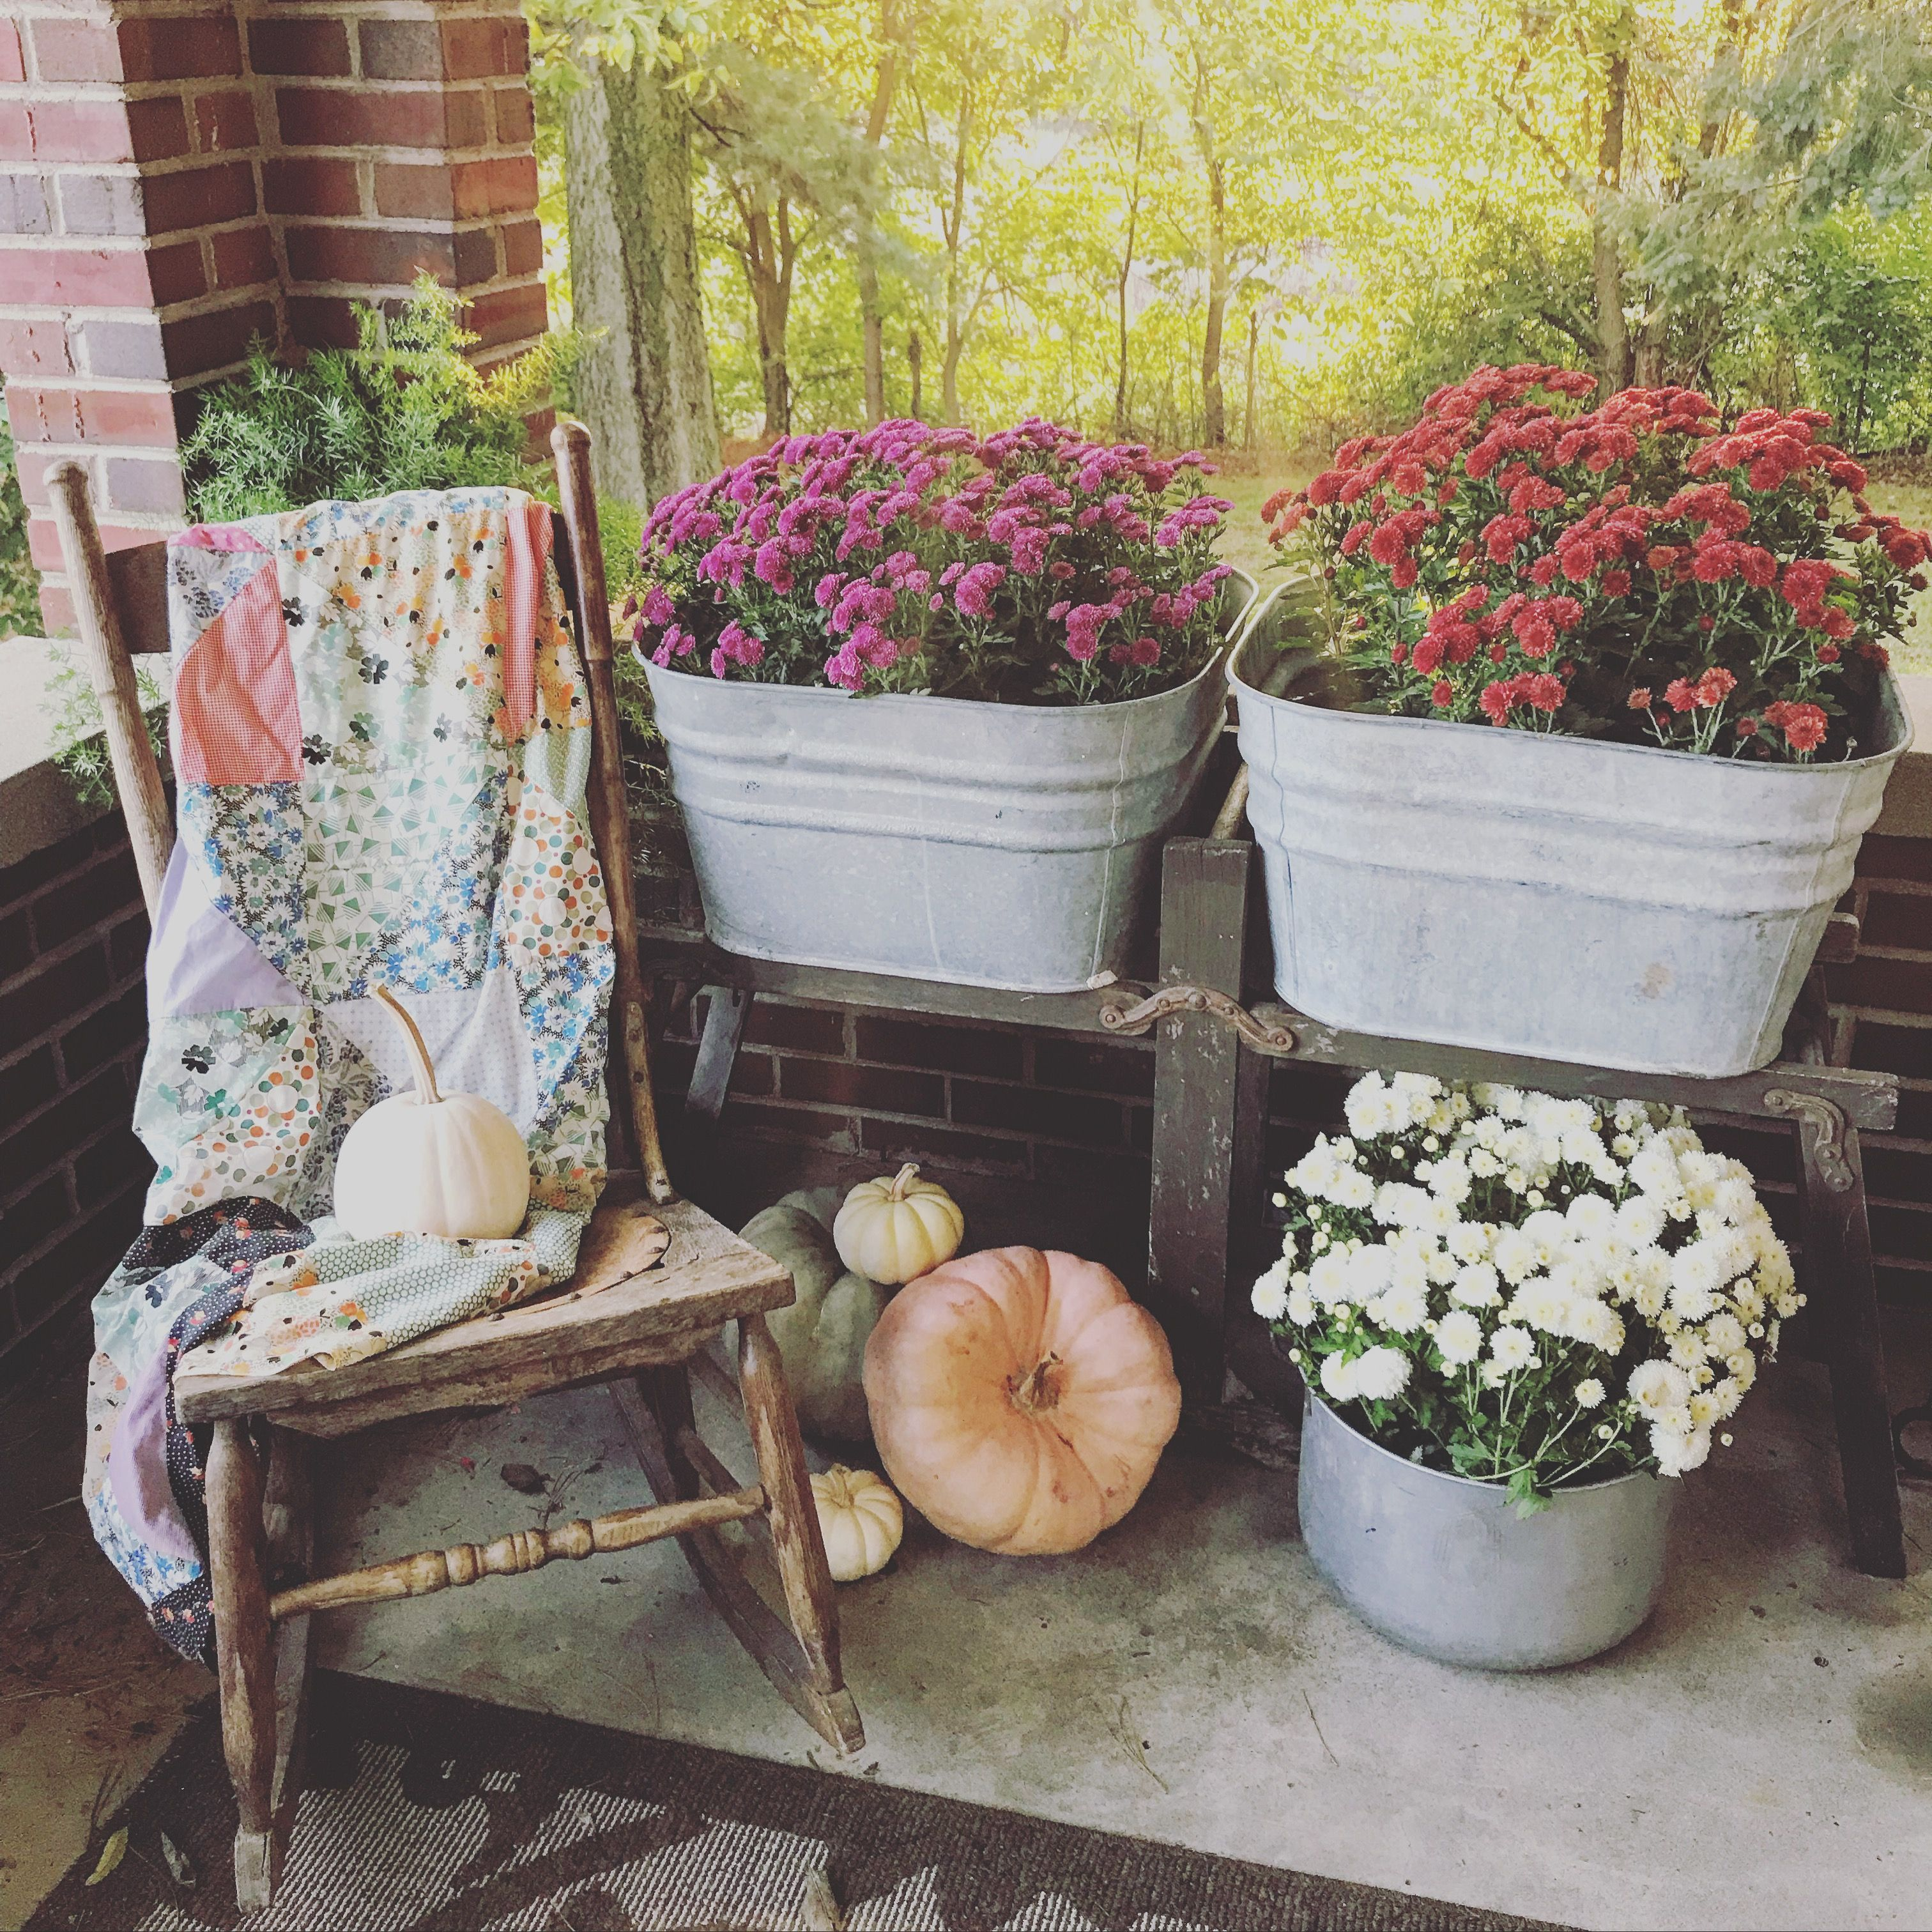 Fall Front Porch Blooming Mums In Vintage Wash Tubs Making Use Of An Old Cooking Pot As A Planter Wash Tubs Fall Front Porch Fall Planters